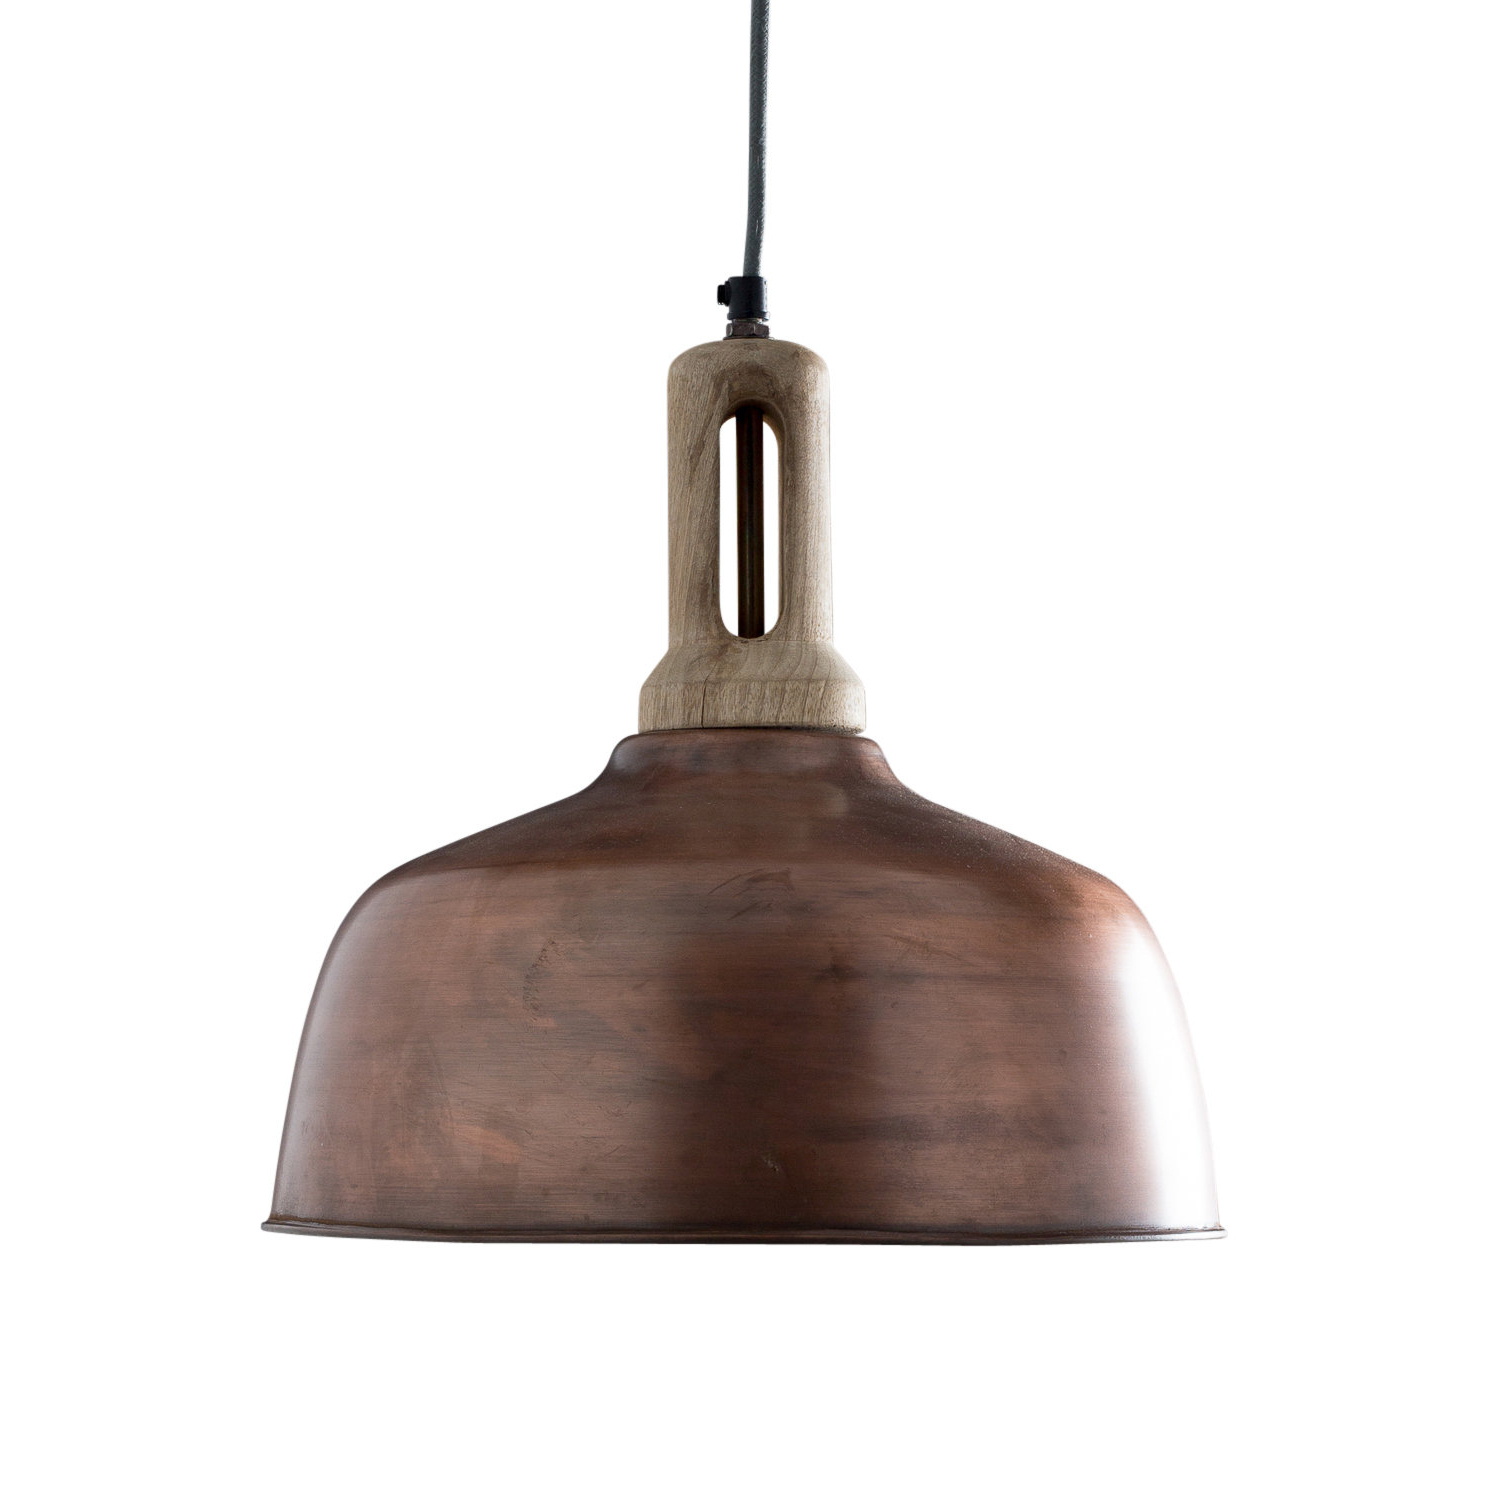 2020 Conover 1 Light Dome Pendants Throughout Glenam 1 Light Dome Pendant (Gallery 11 of 20)